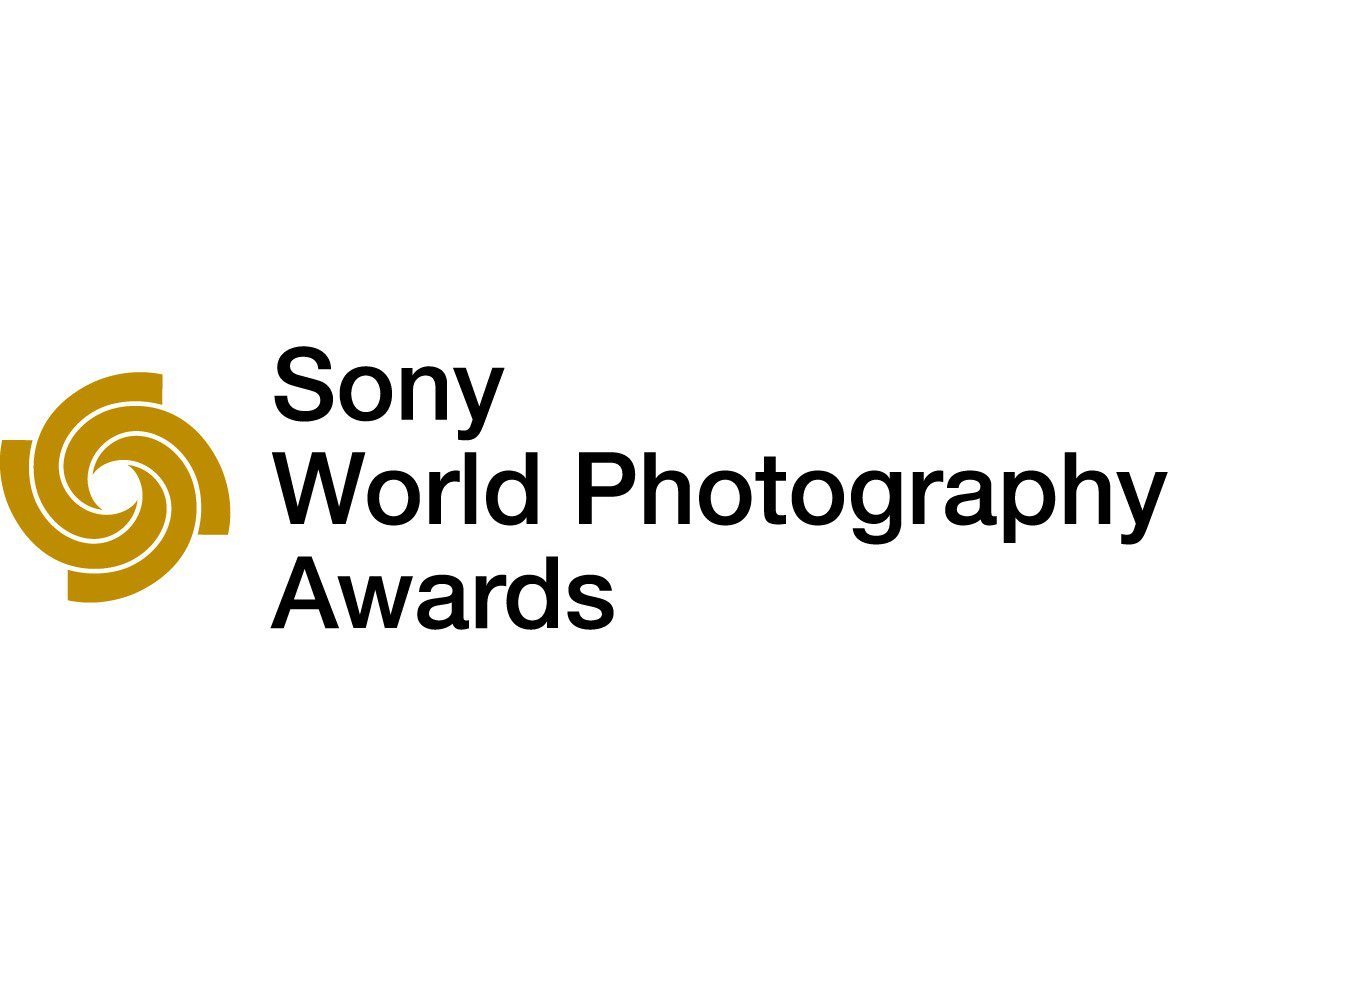 Sony World Photography Awards 2018 ($30,000 plus the